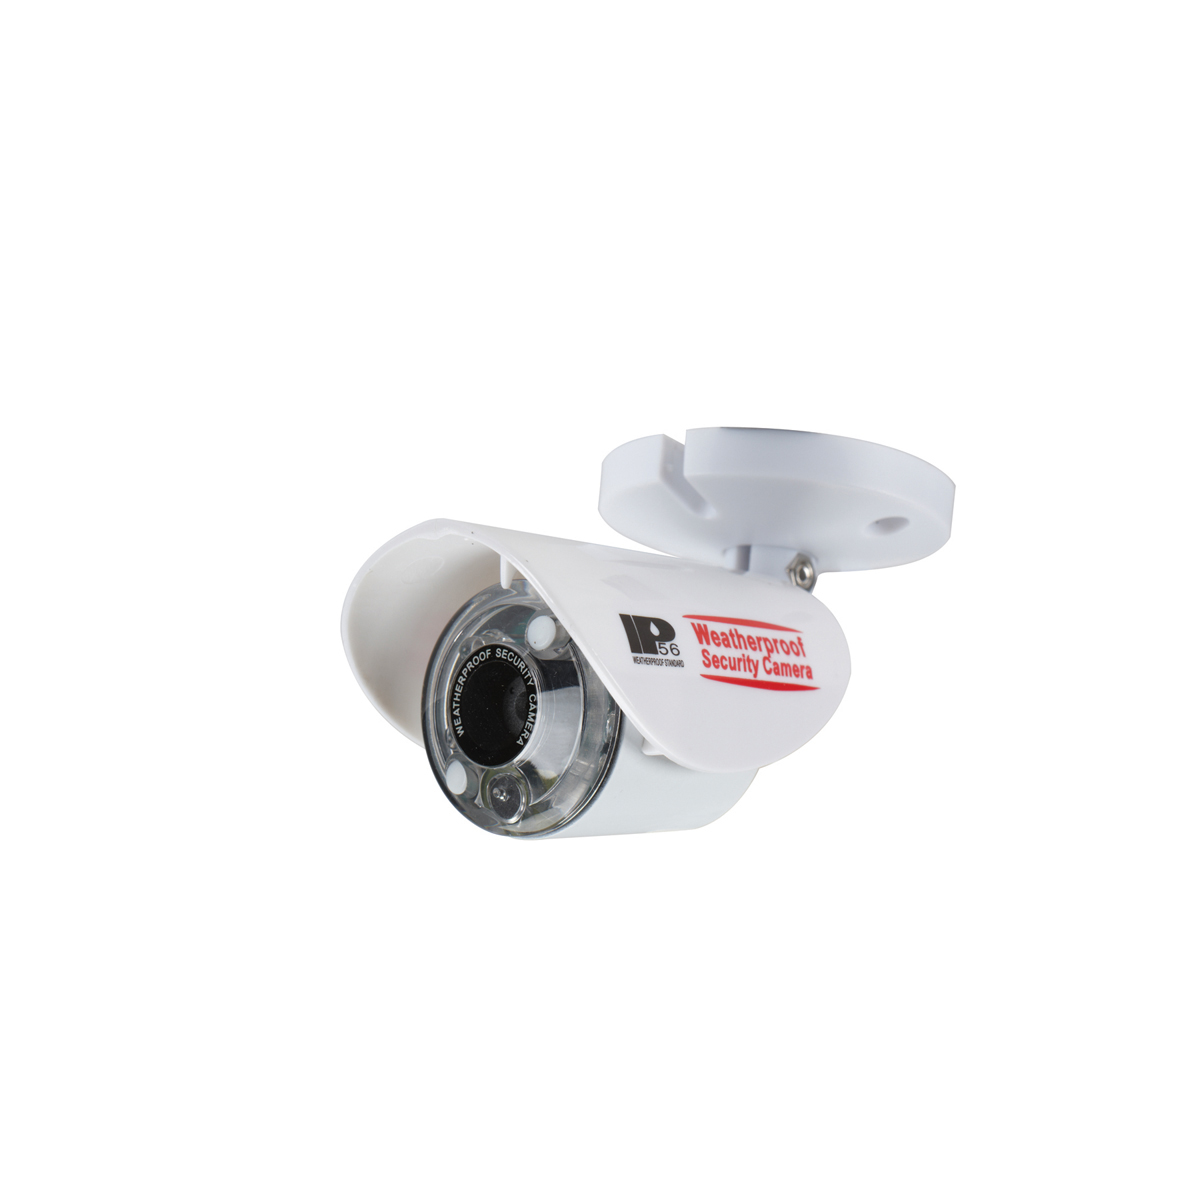 Weatherproof Security Camera With Night Vision